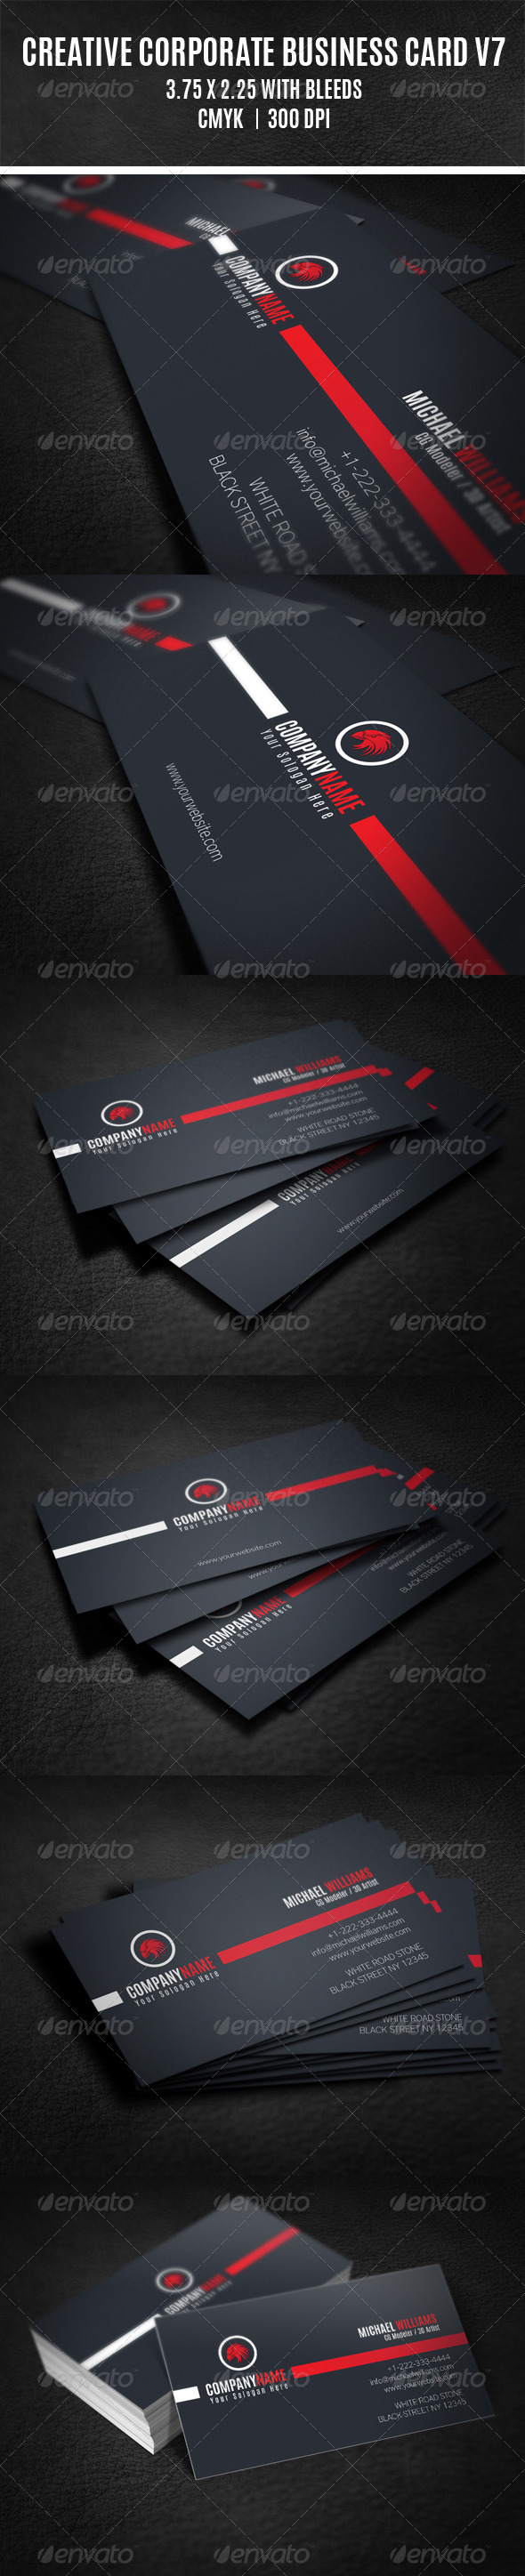 GraphicRiver Creative Corporate Business Card V7 8630937